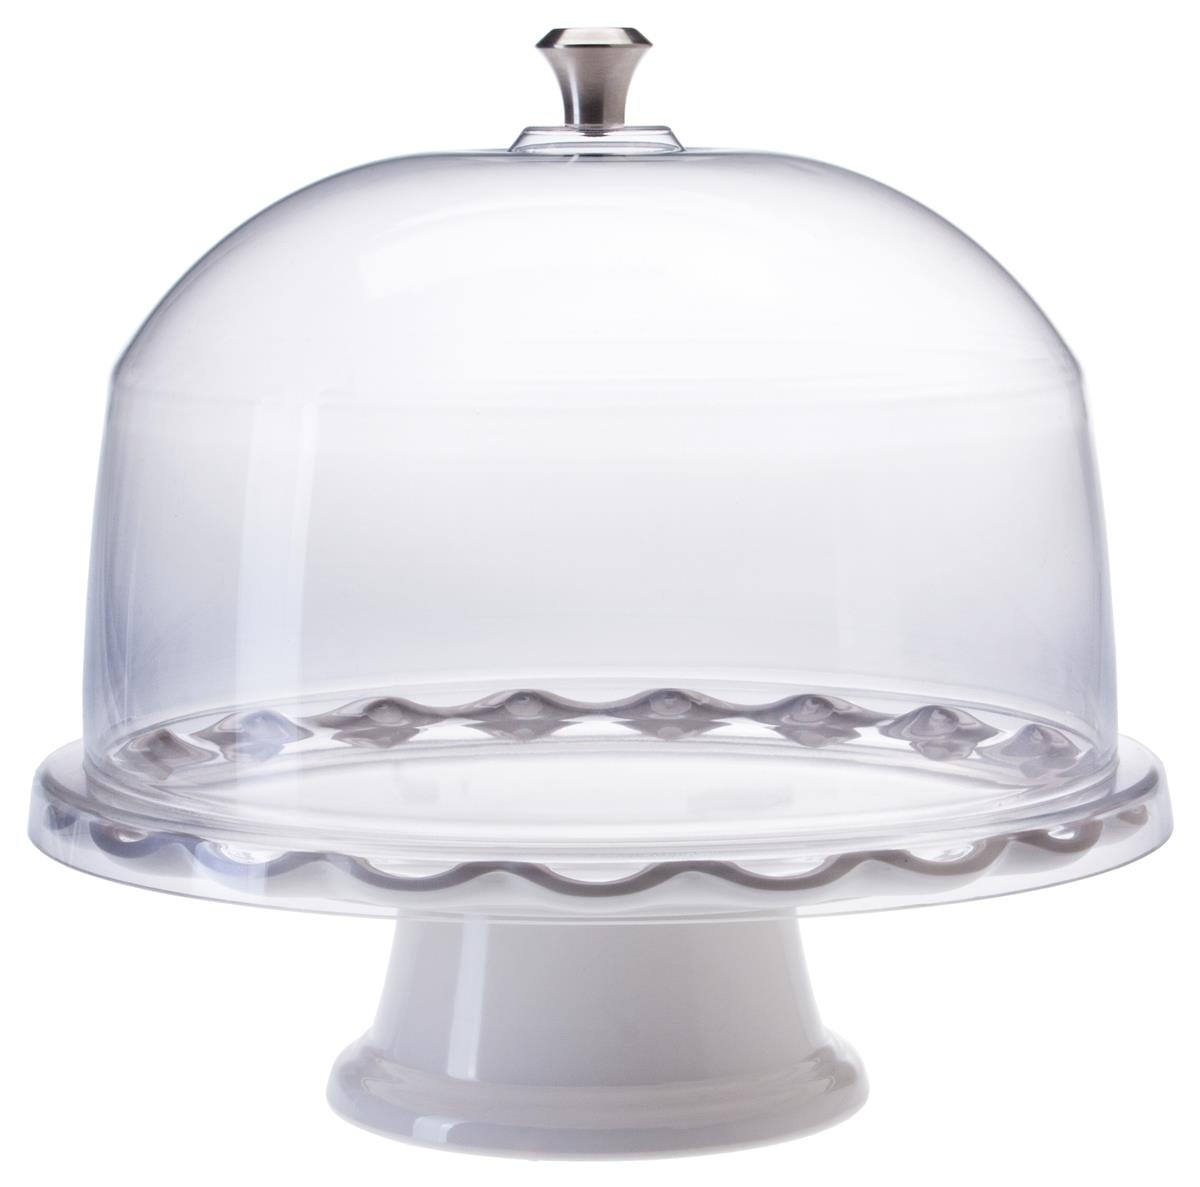 sc 1 st  Displays2go & 11\u201d White Cake Stand with Dome | Scalloped Edge Design